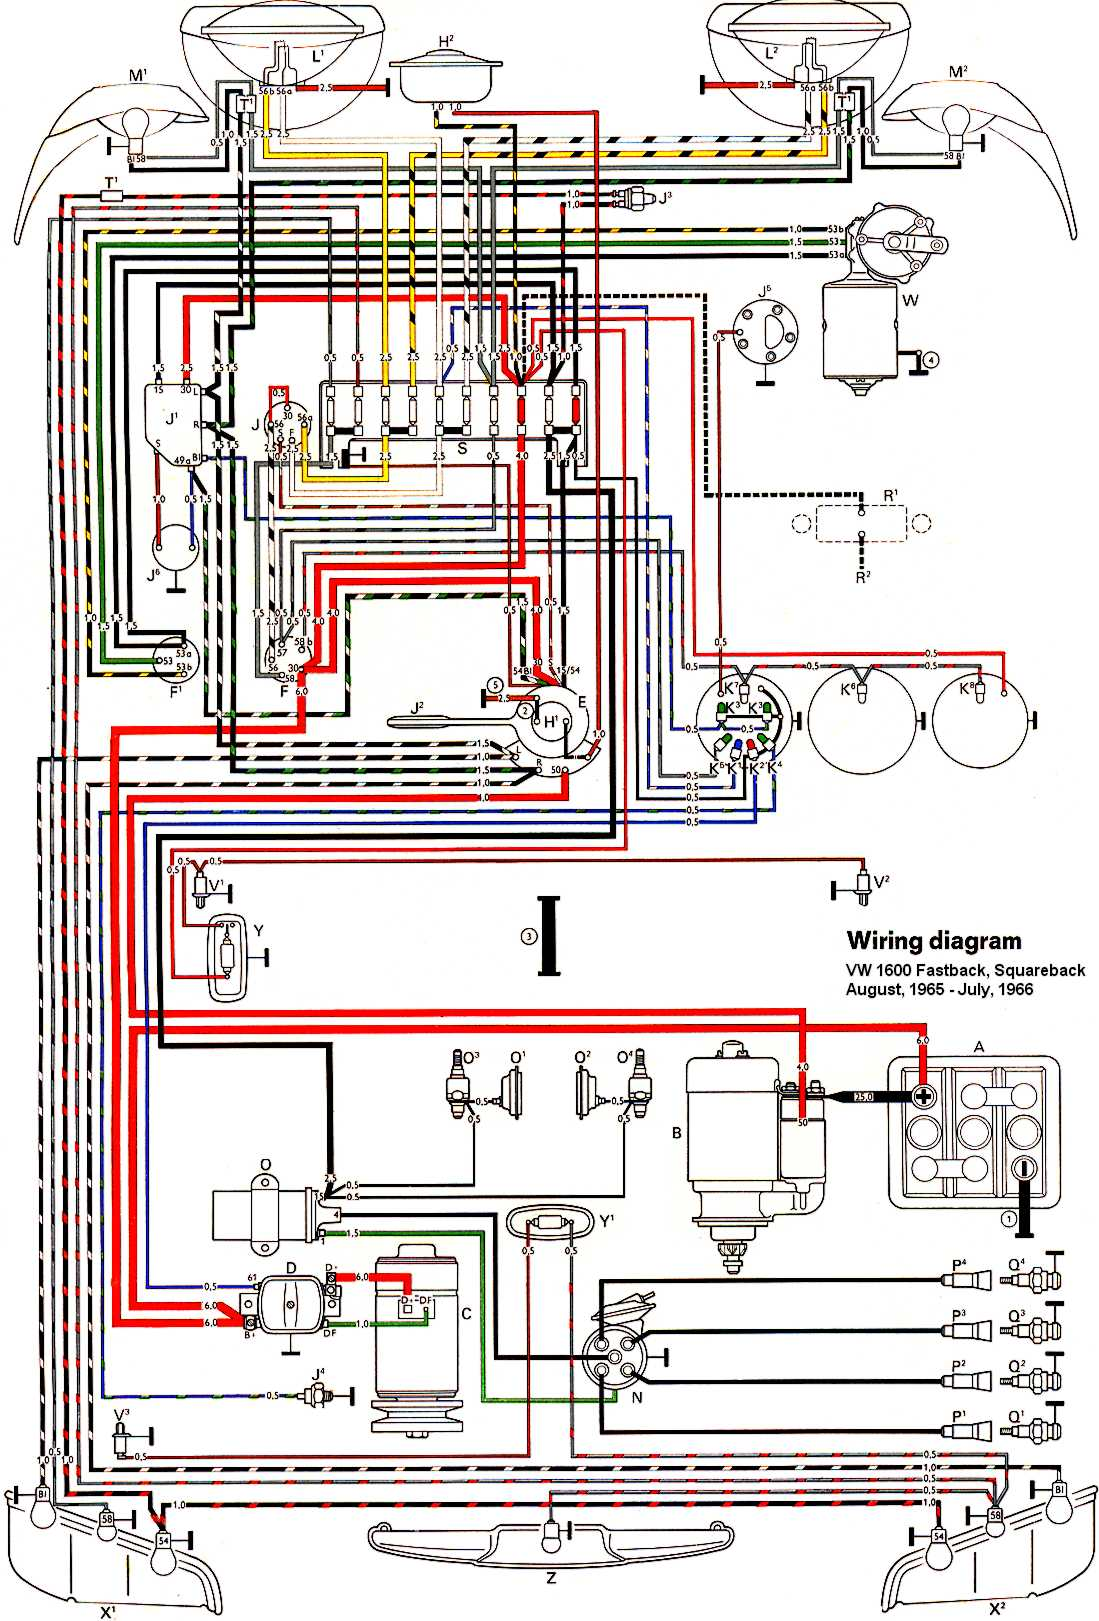 type3_1600_66 vw thing wiring diagram 1974 beetle heater diagram \u2022 wiring 1969 vw squareback wiring diagram at webbmarketing.co